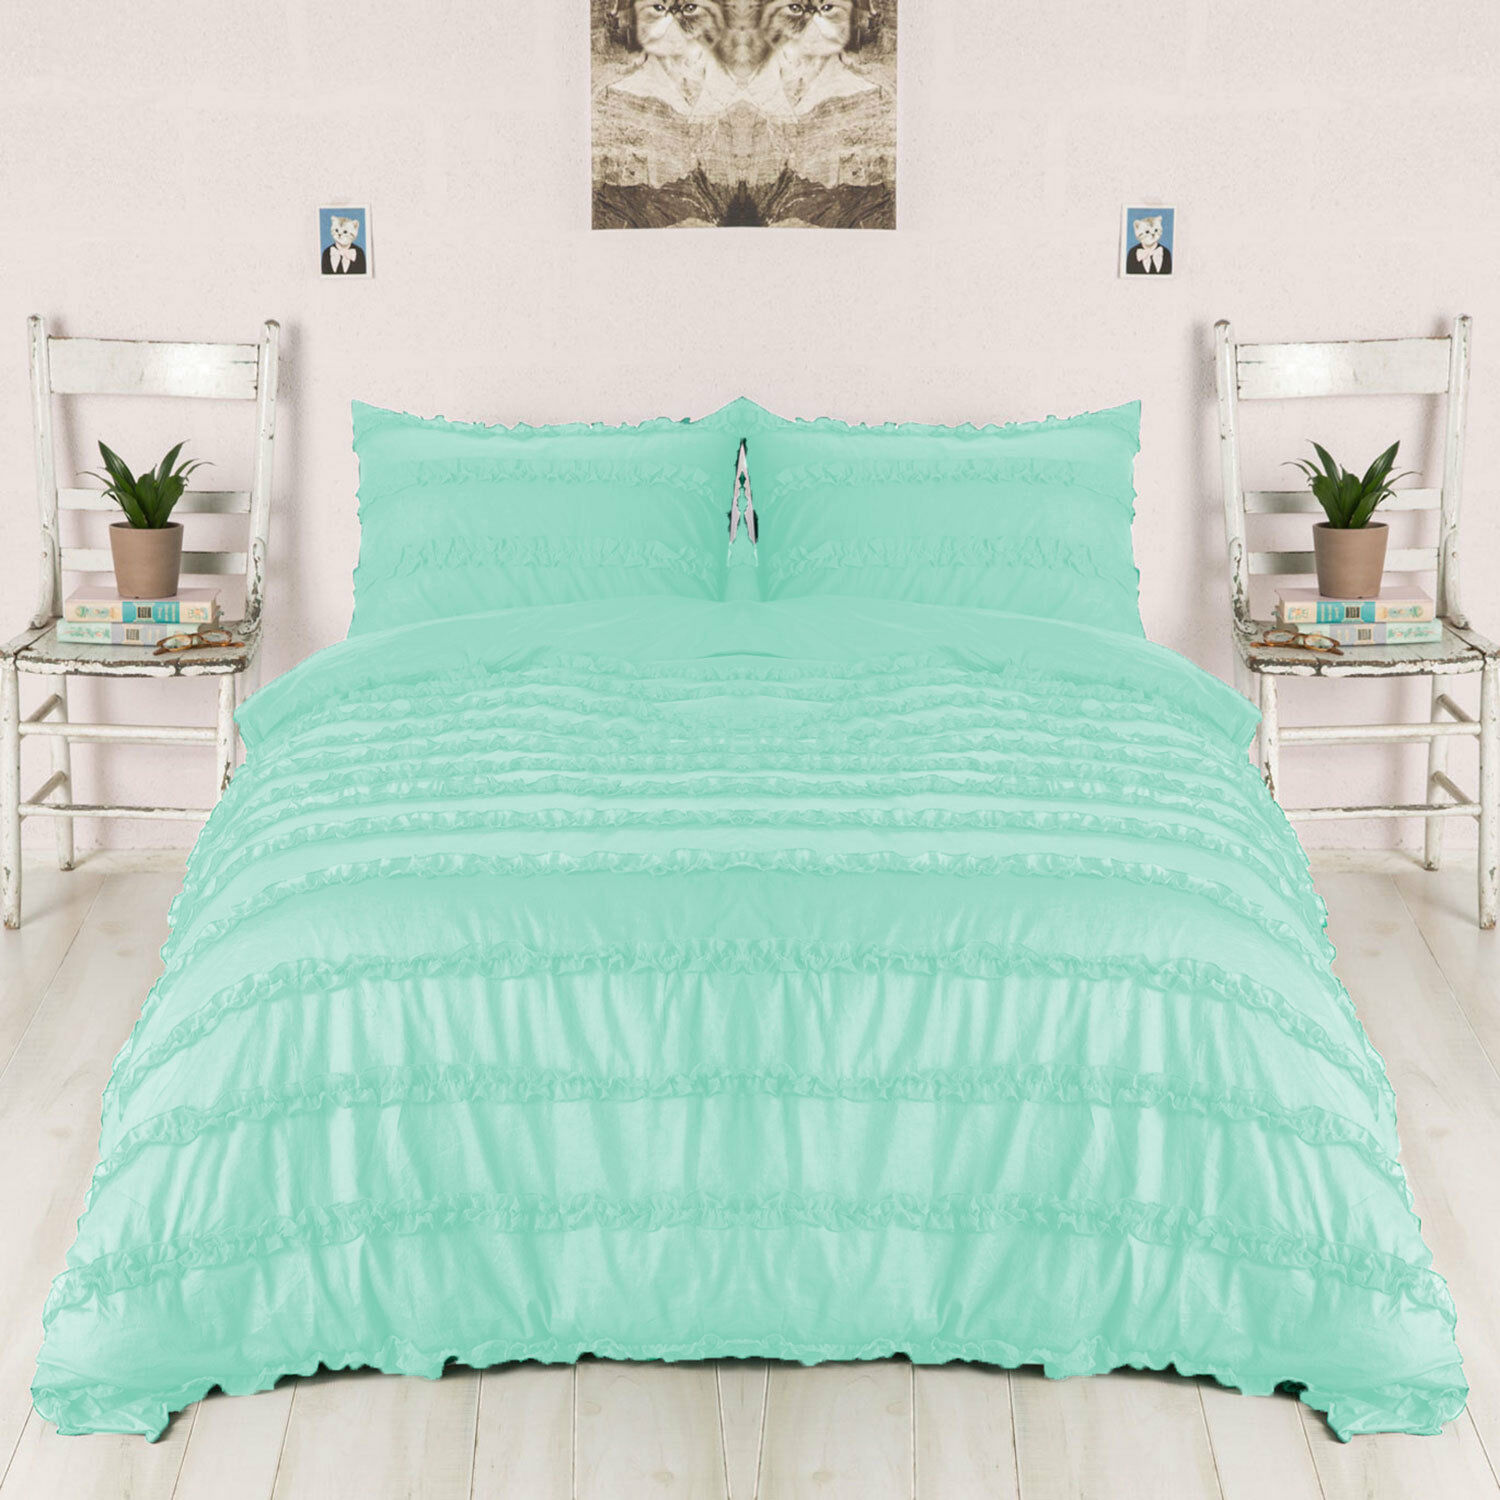 1 Piece Horizontal Ruffle Duvet Cover 100% Egyptian Cotton All size & color